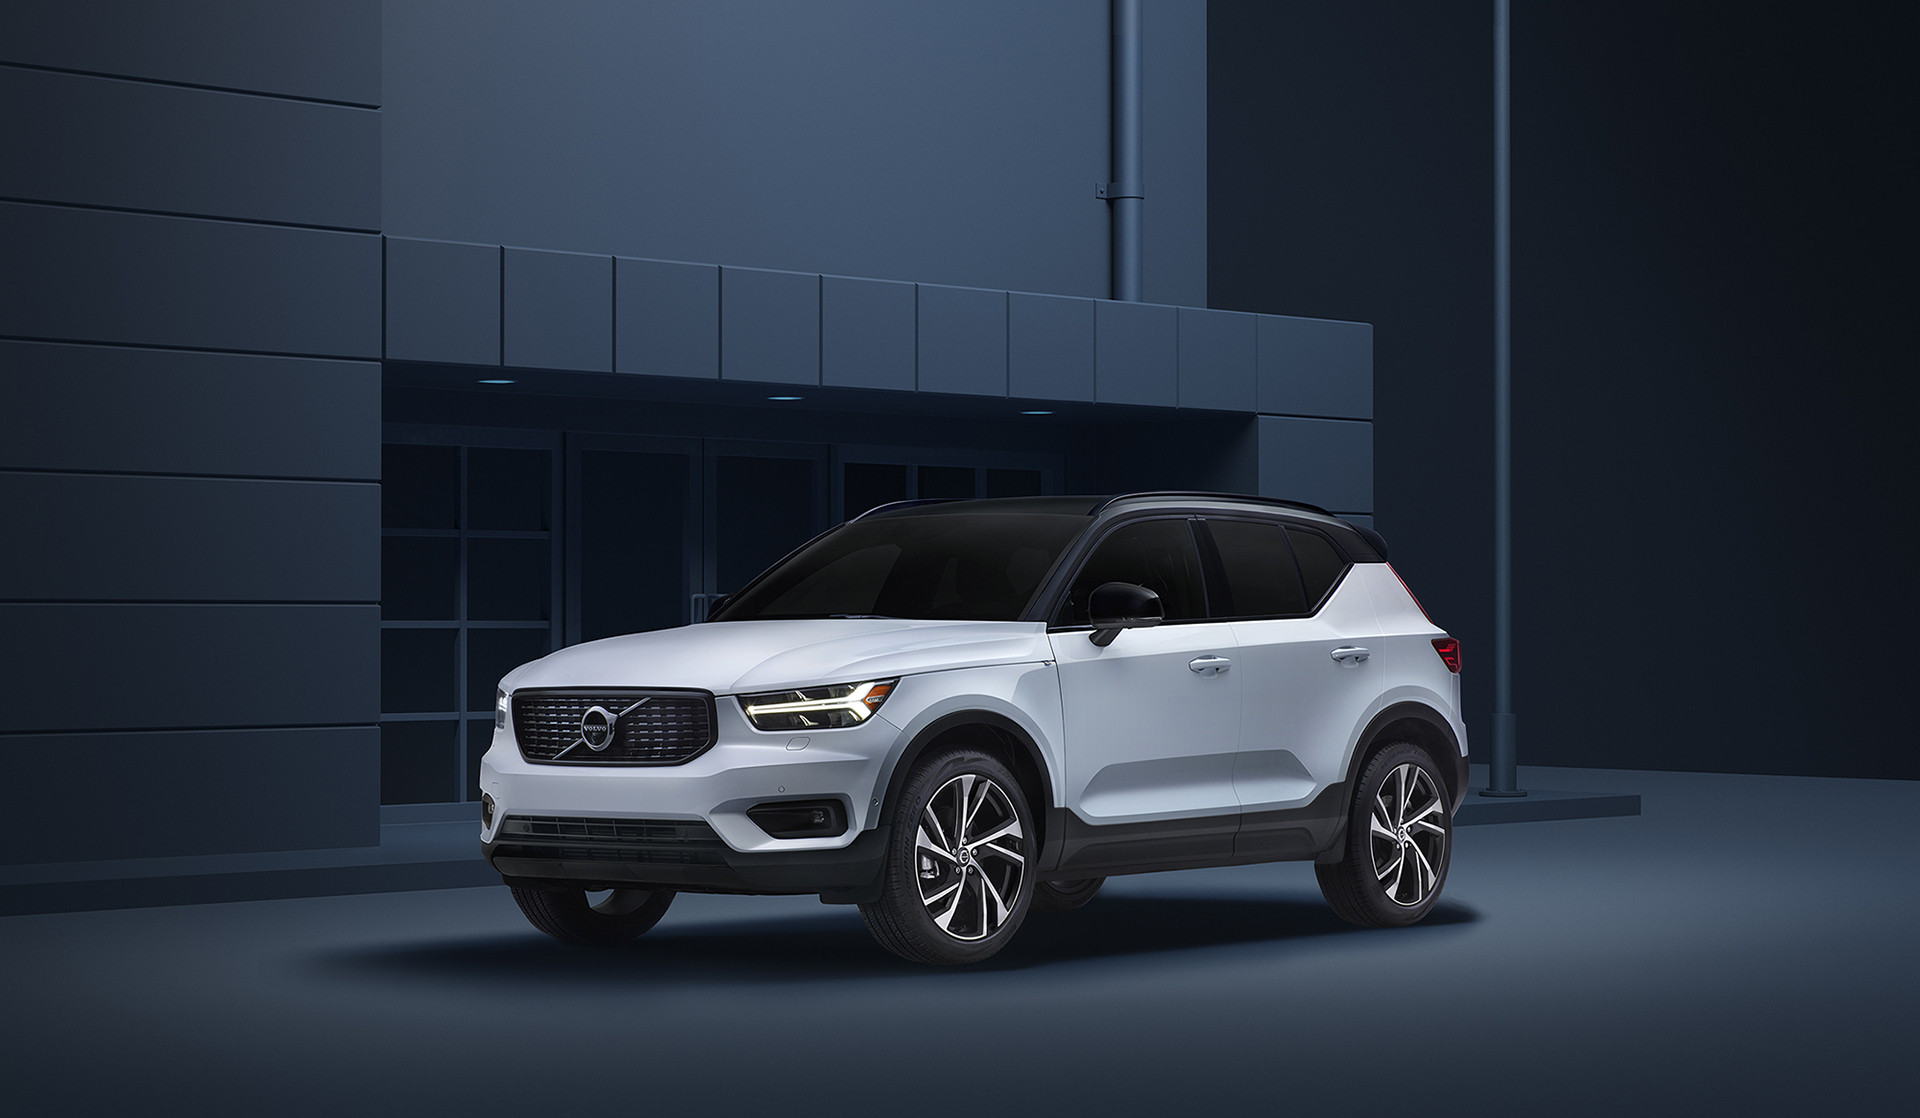 VolvoXC40_ThreeQuarter_FINAL_layered_just_carF_small